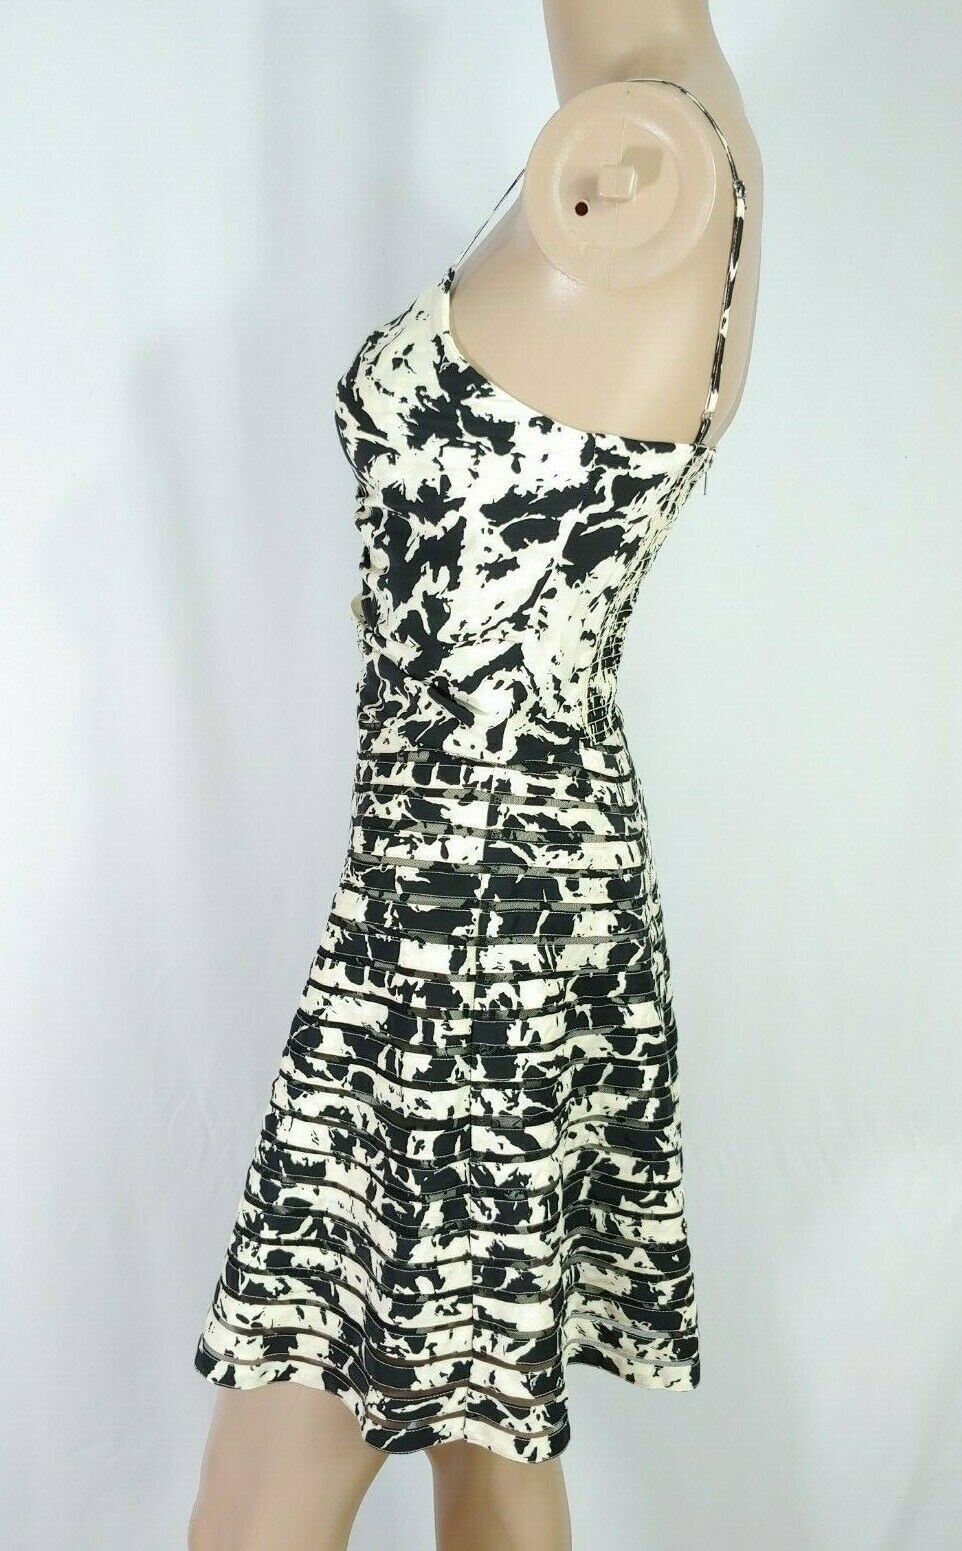 Parker $228 Mesh Stripe Insert Ivory Black Abstract Fit & Flare Party Dress XS